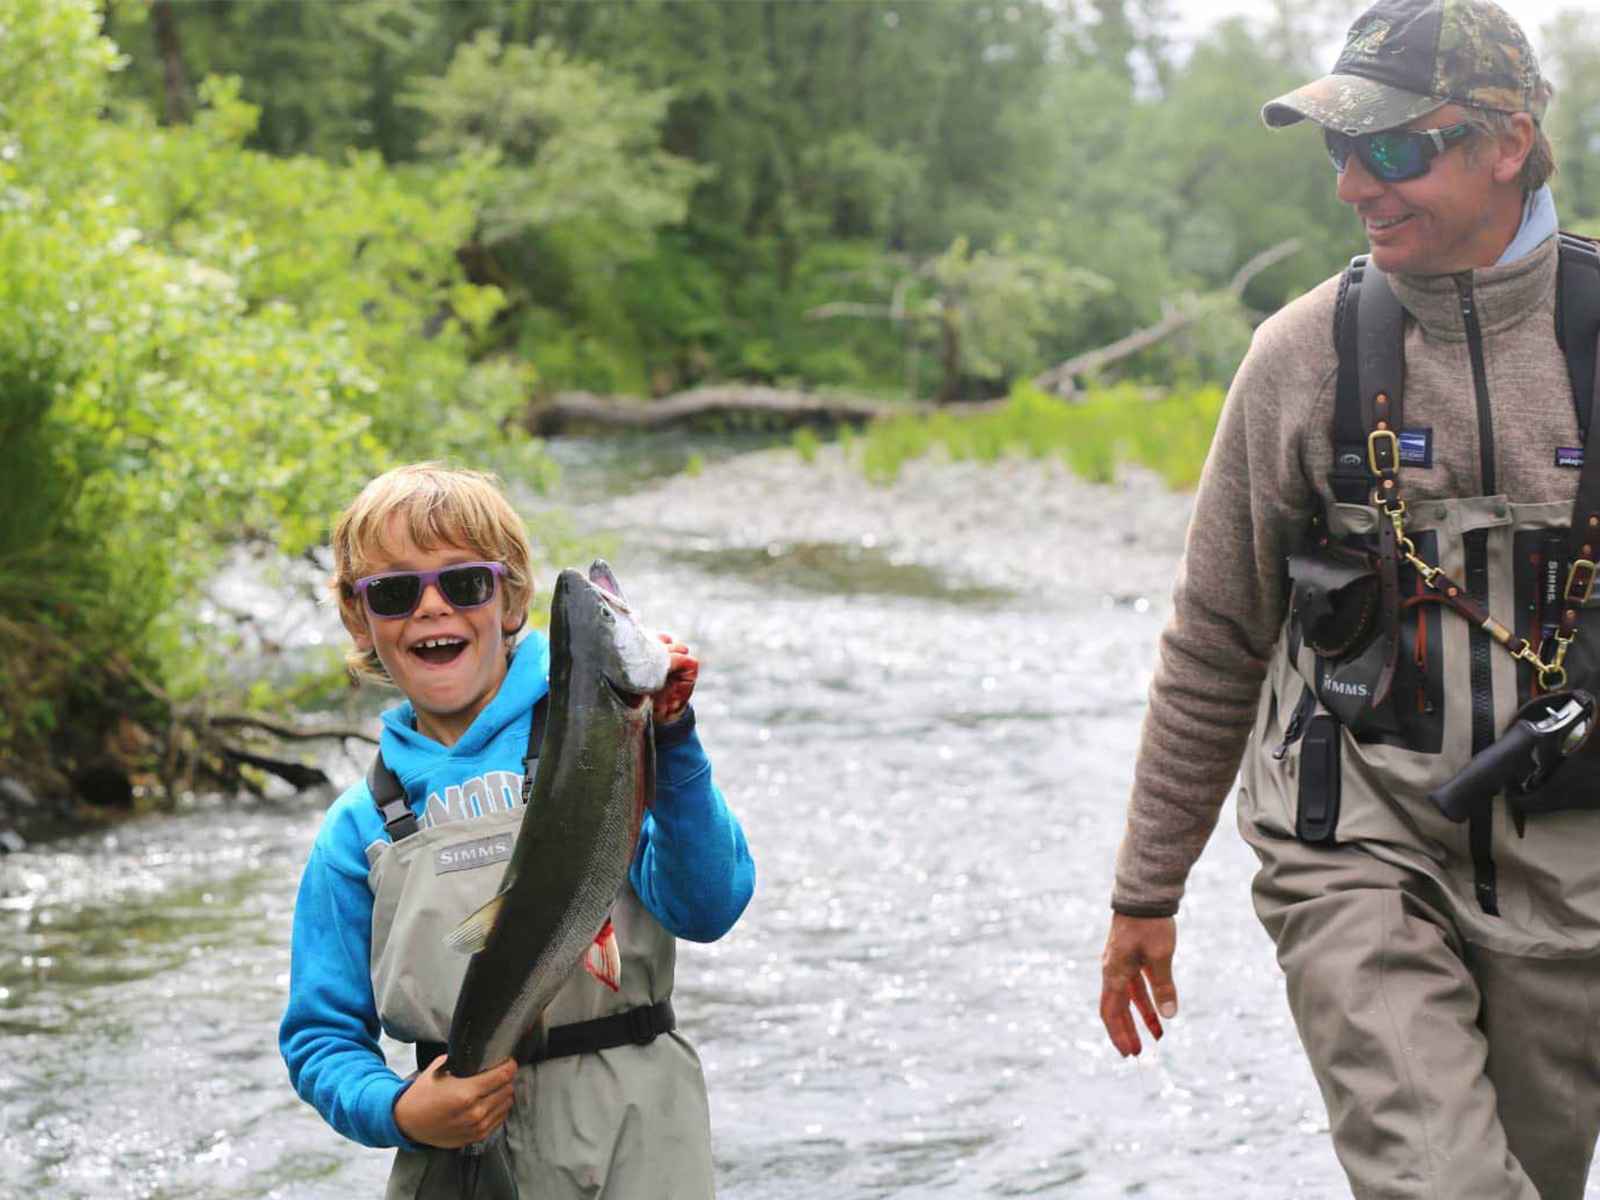 Father and son fishing in an Alaskan river with the son holding a fish they caught.